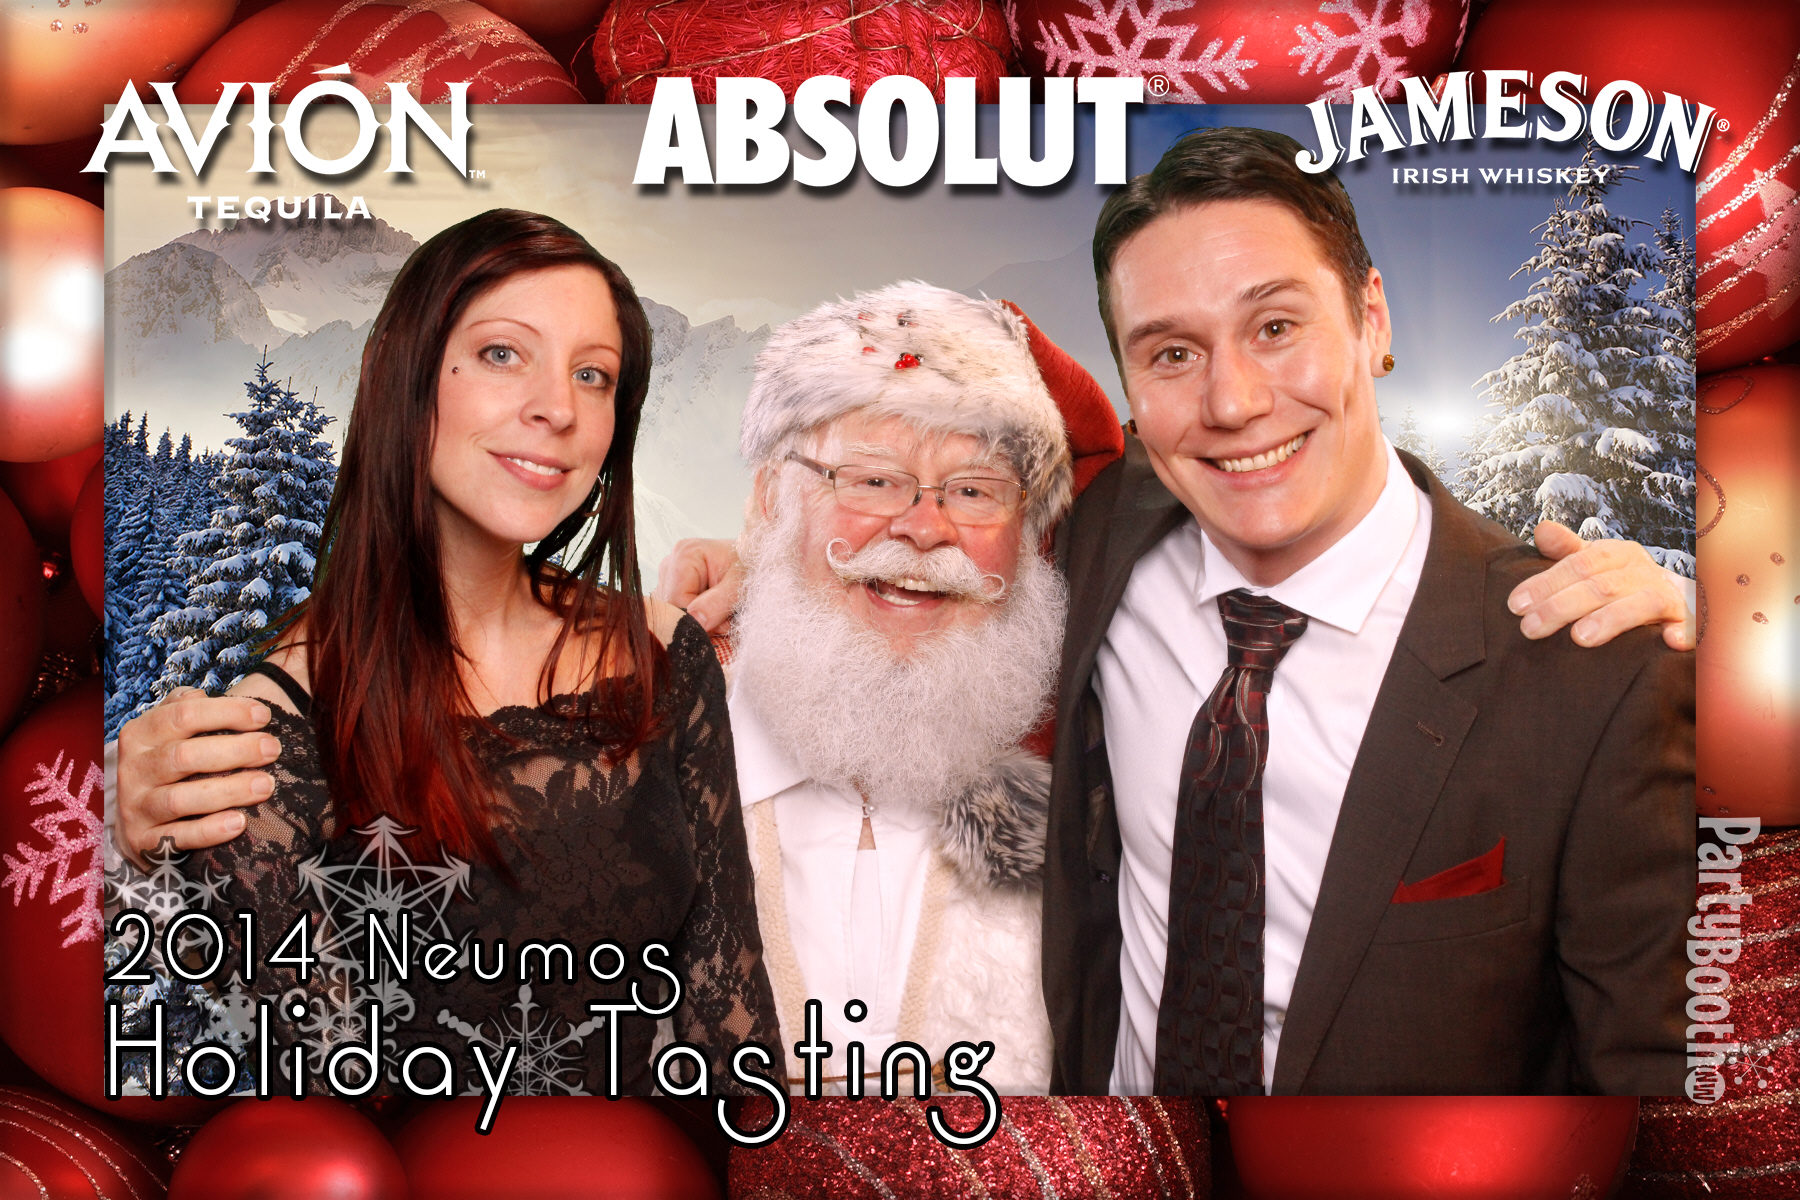 Seattle Photo Booth: Jameson Holiday Party with Santa at Seattle's Neumo's - Tonight We PartyBooth!